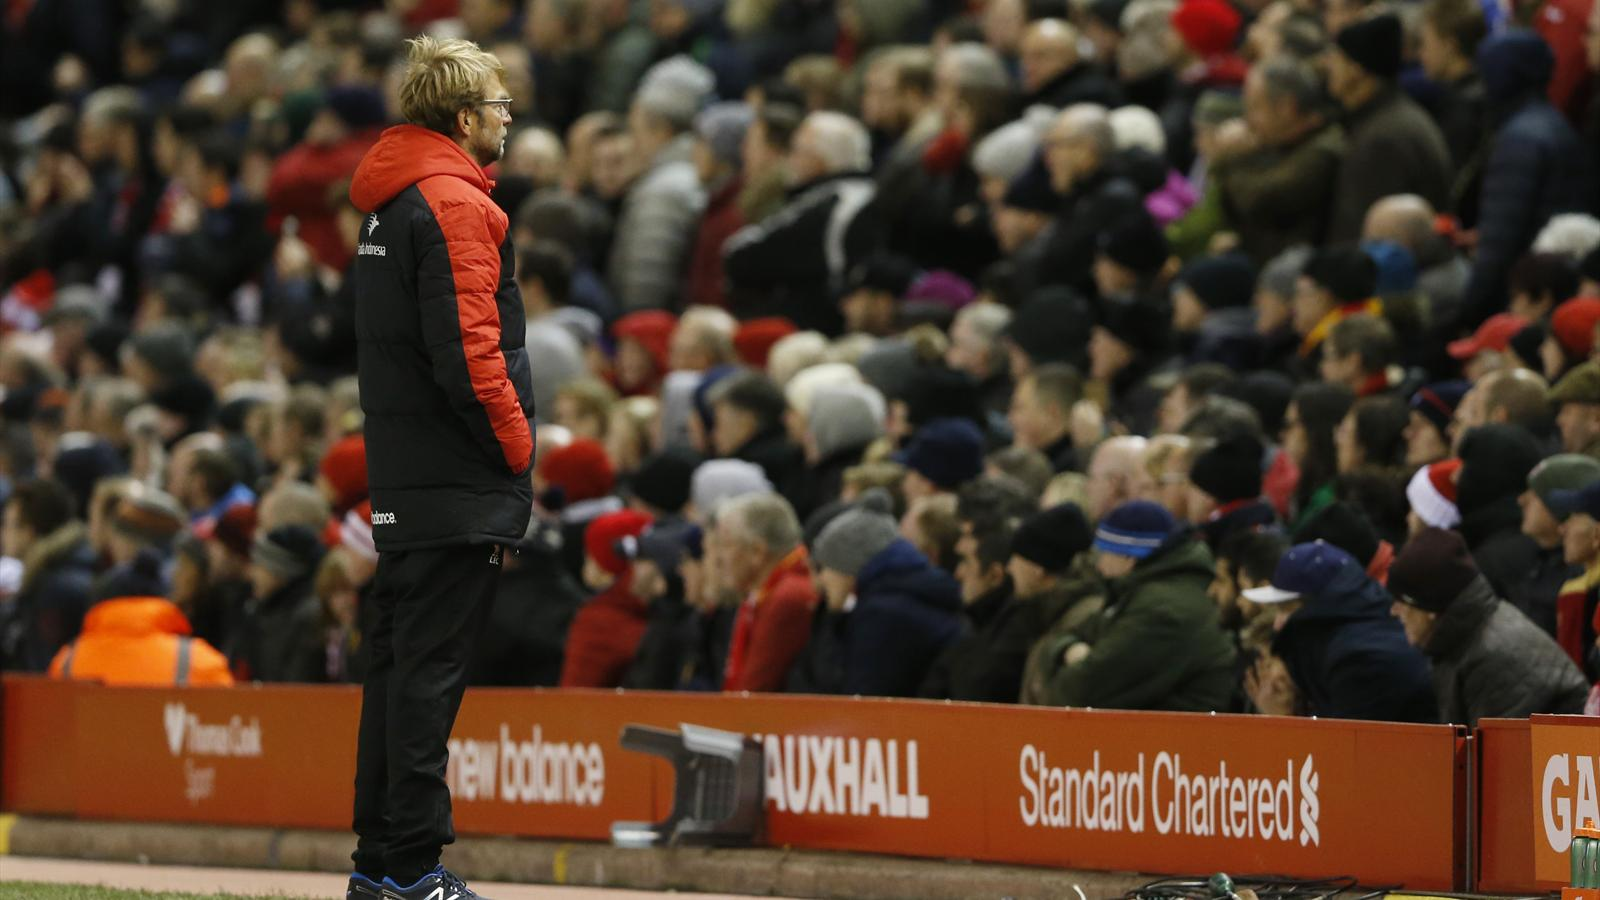 Liverpool manager Jurgen Klopp looks away as James Milner scores from the penalty spot